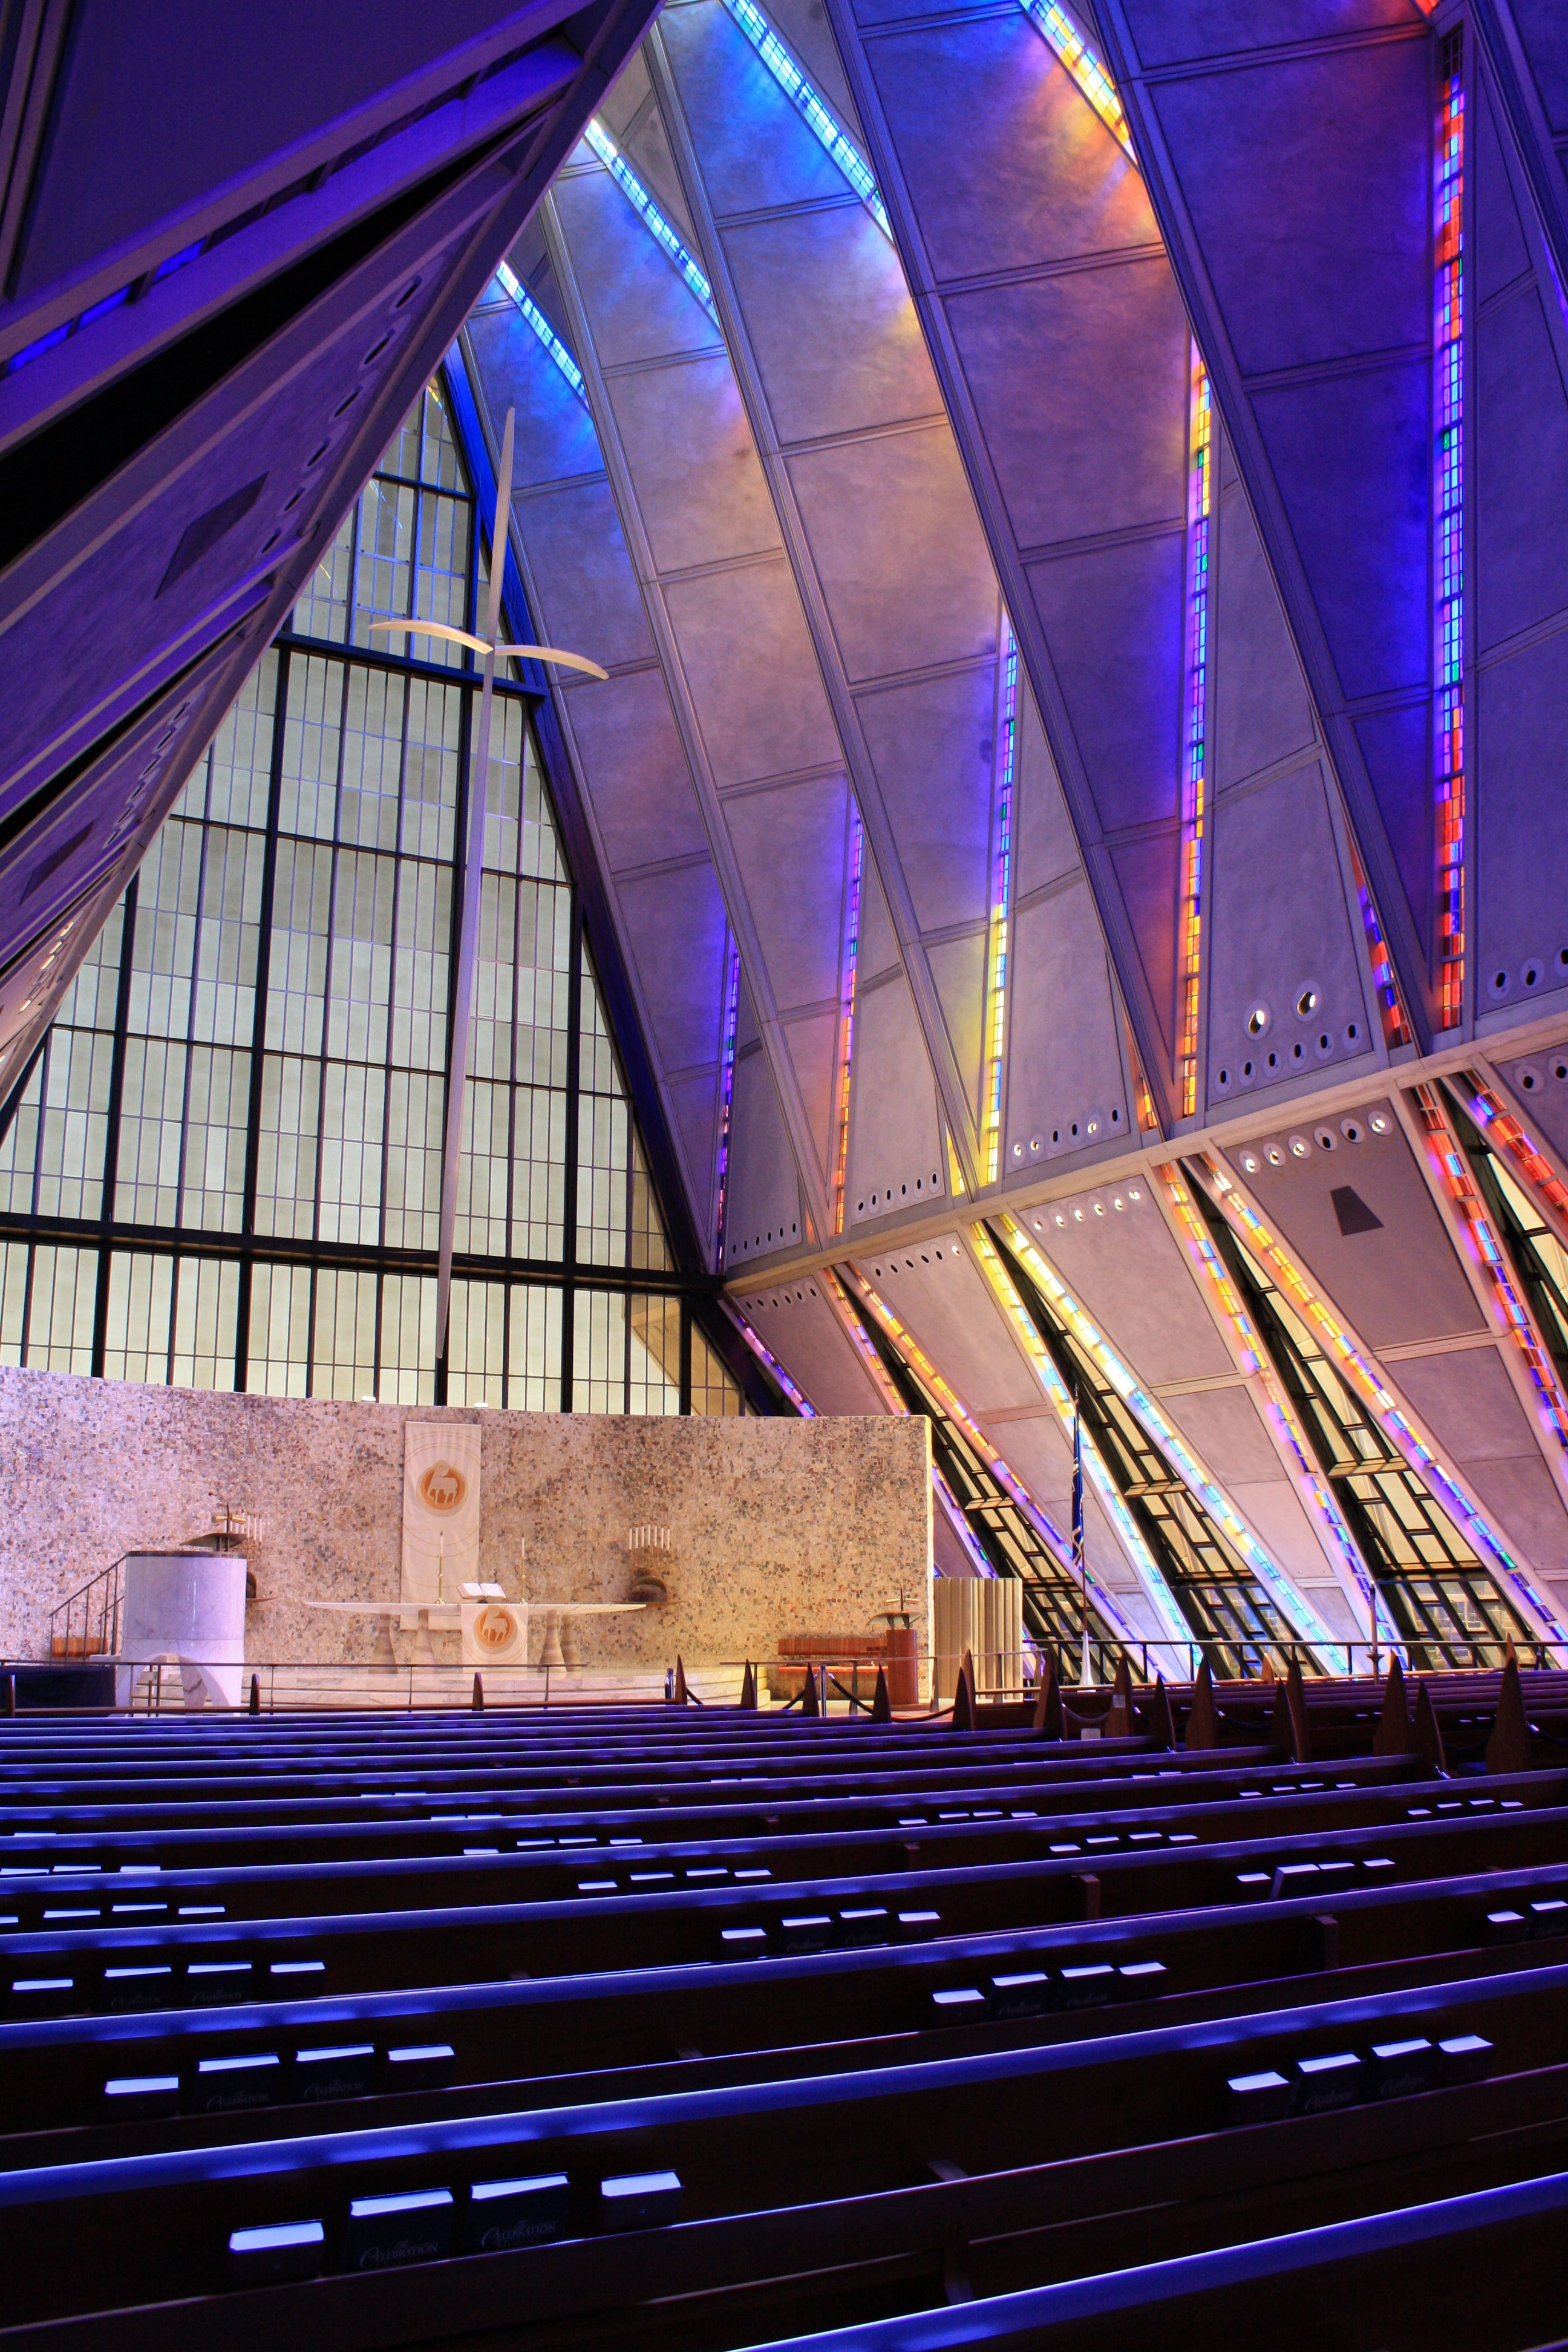 Cadet Chapel at the U.S. Air Force Academy in Colorado